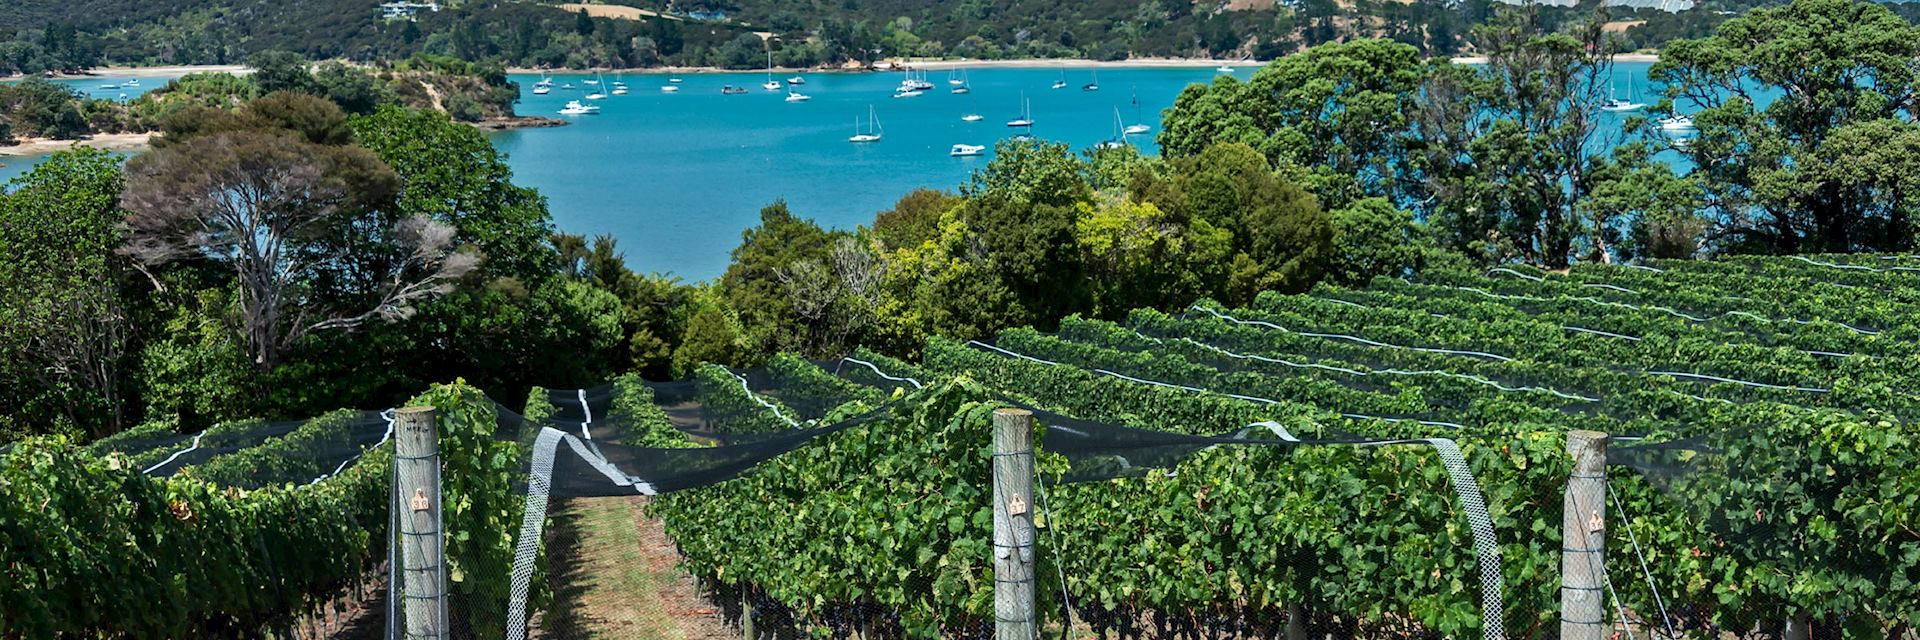 Visit one of Waihekes Island's vineyards